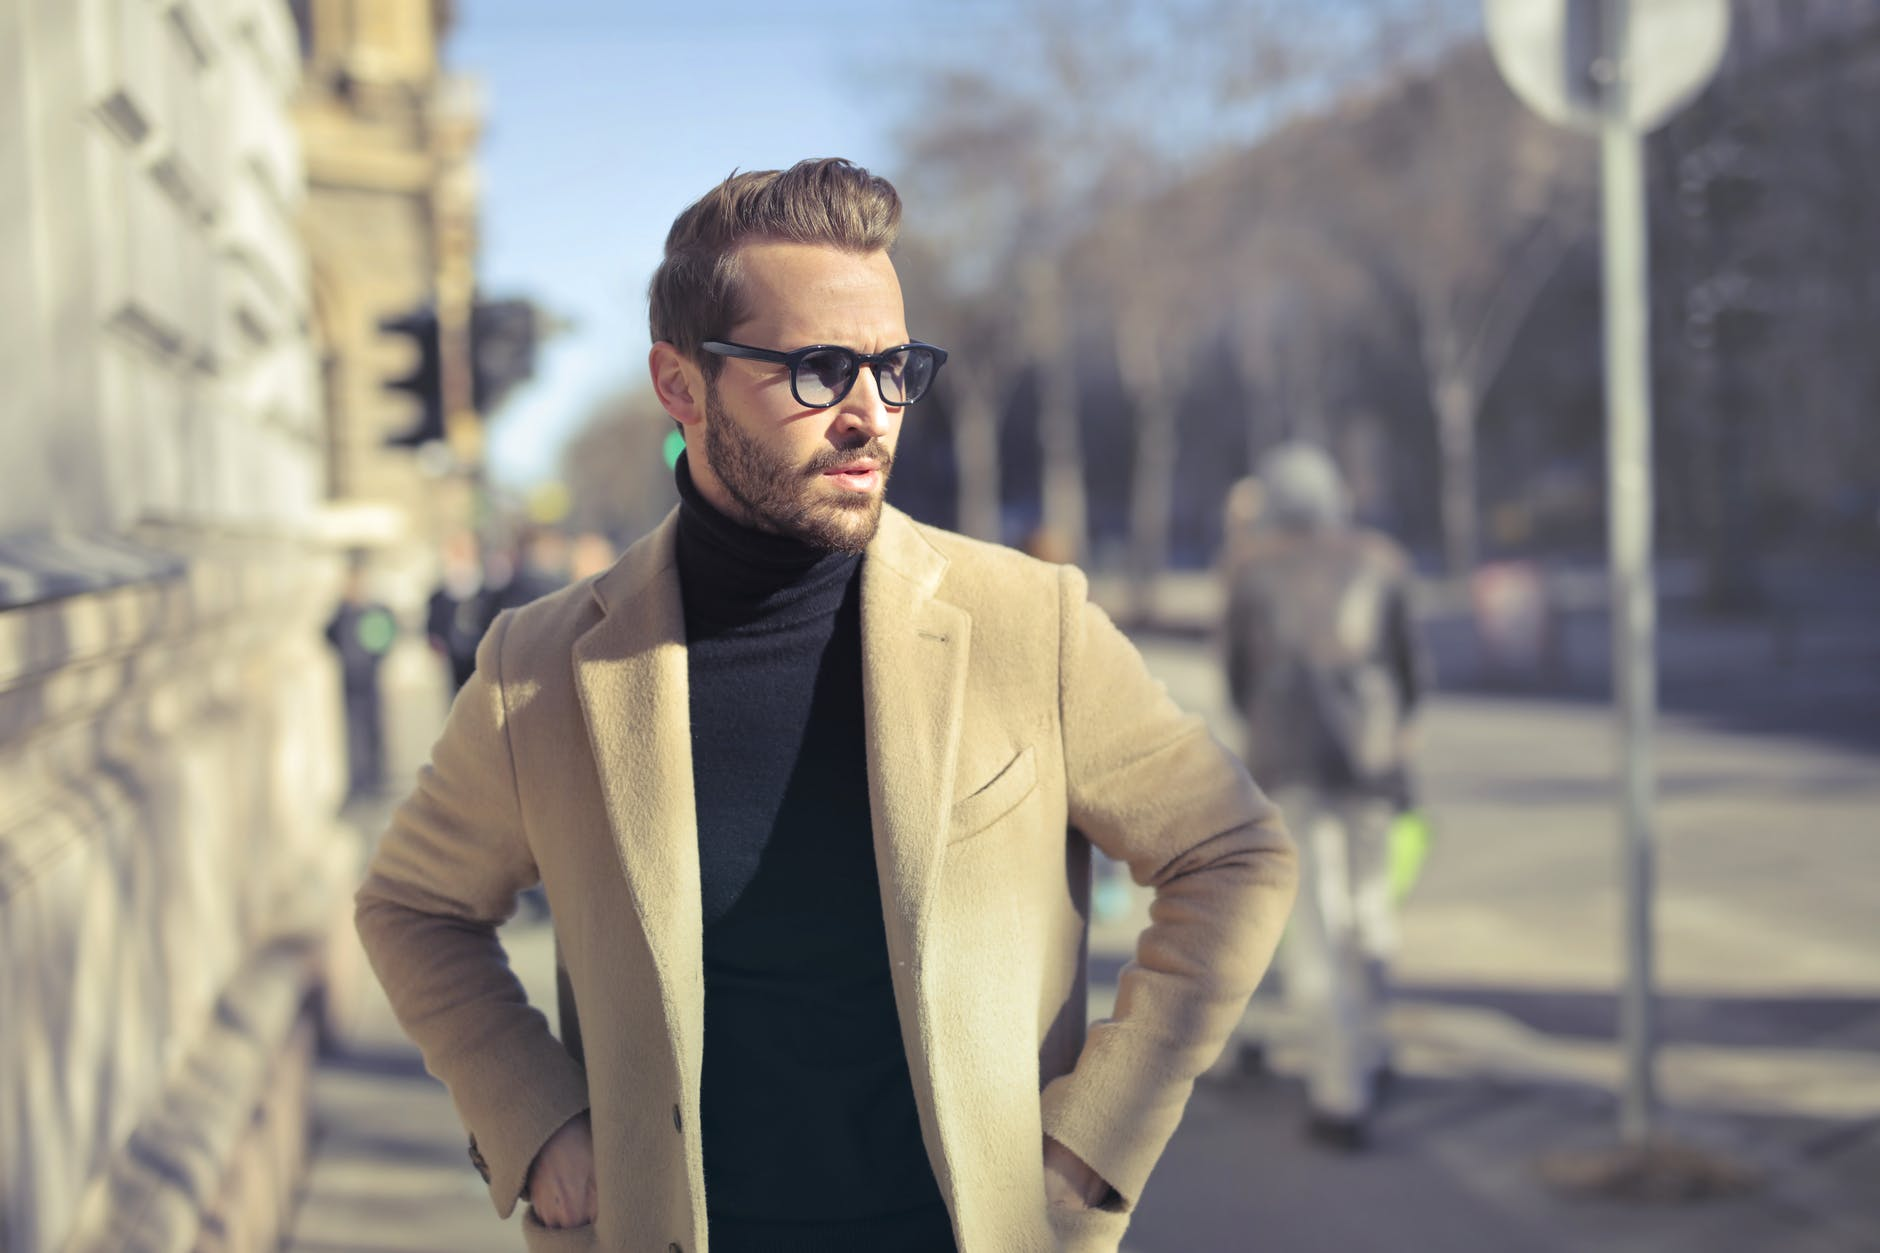 What Sunglasses Suit My Face? How to choose the right Sunglasses